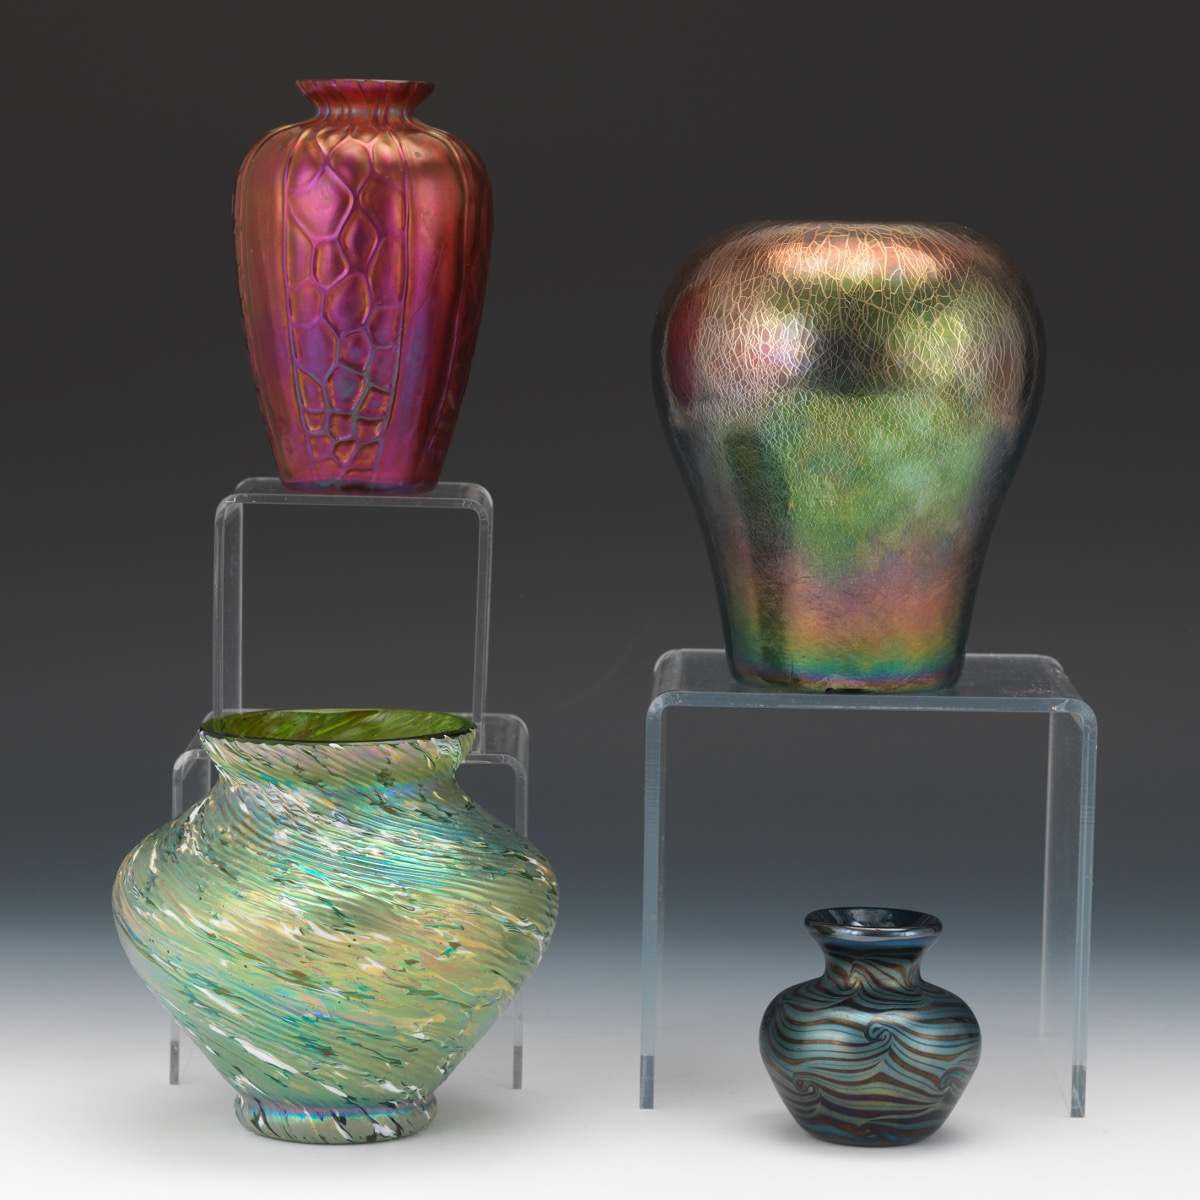 Four Art Glass Iridescent Cabinet Vases 02 20 16 Sold 253 7